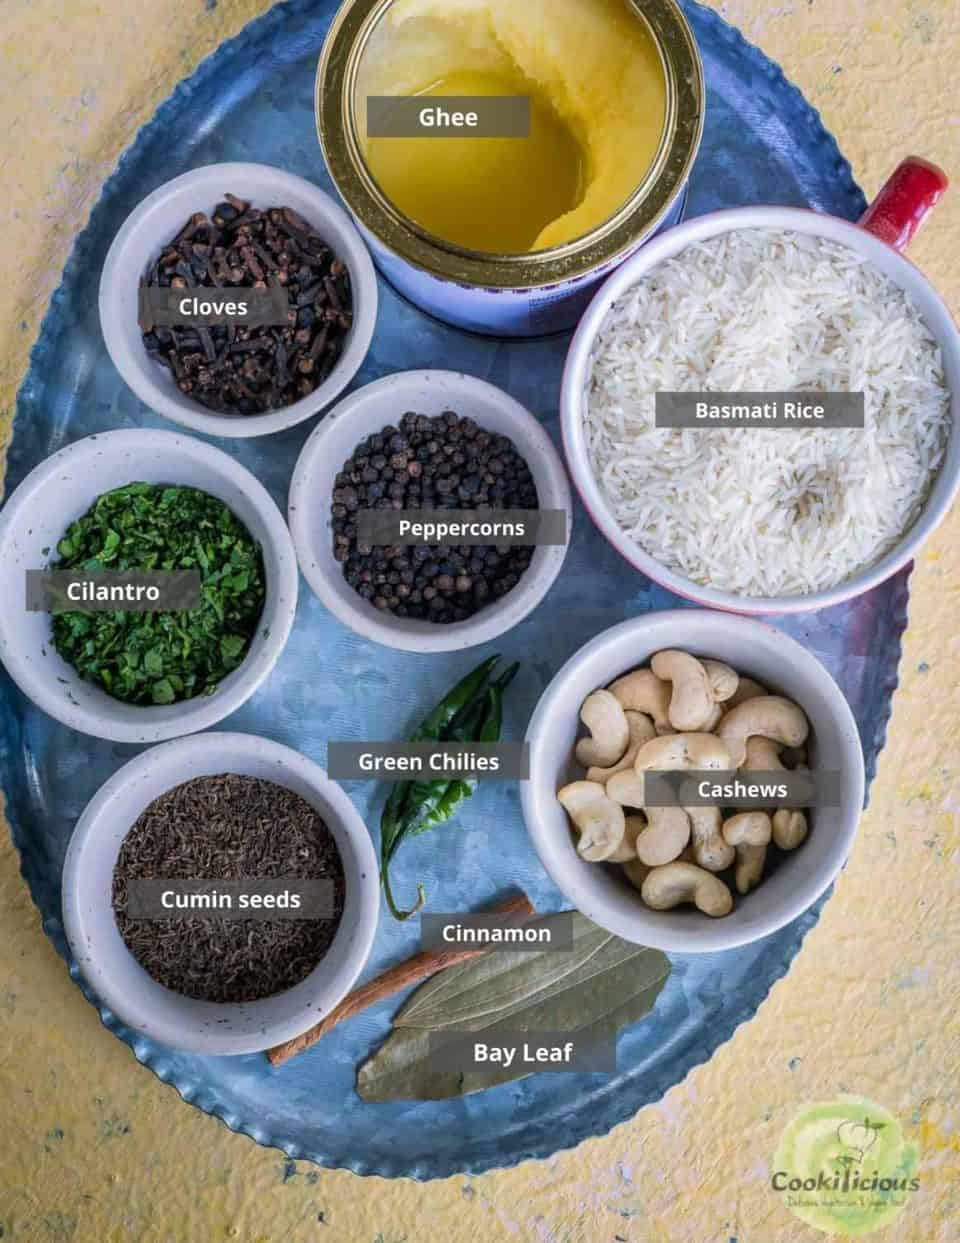 all the ingredients needed to make jeera rice in the Instant pot placed in a tray with labels on them